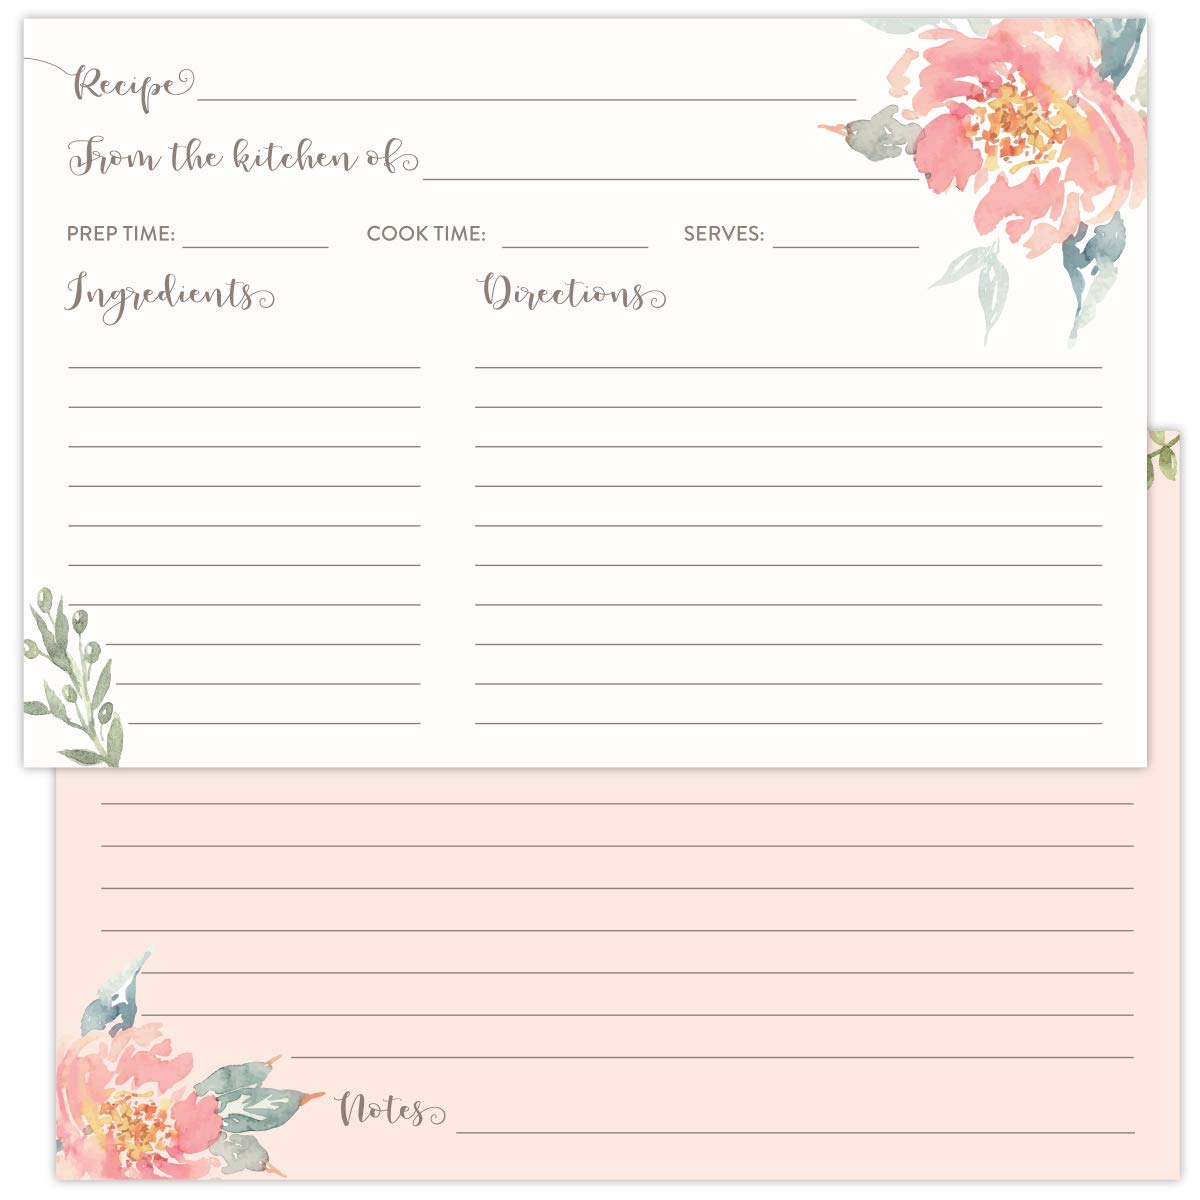 Koko Paper Co Pack of 50 4x6 Recipe Cards with with Light Pink Florals. Perfect for Bridal Showers, Fits in Standard 4x6 Recipe Card Box Holders. by Koko Paper Co